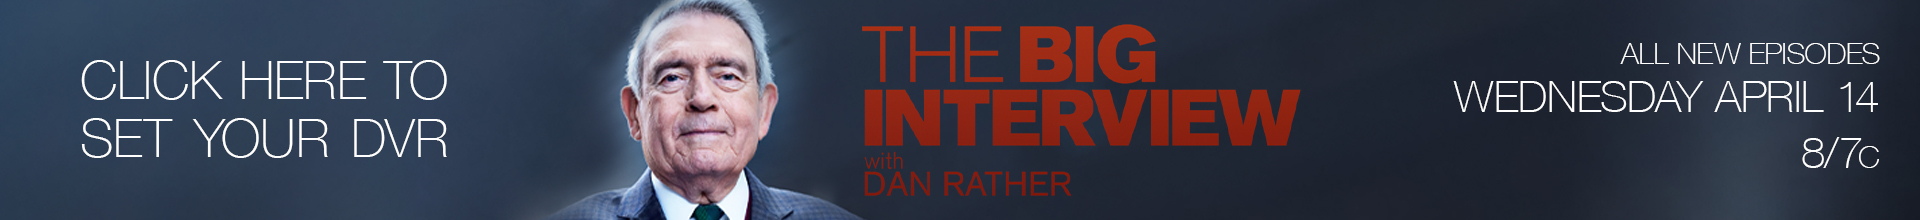 The Big Interview with Dan Rather on AXS TV